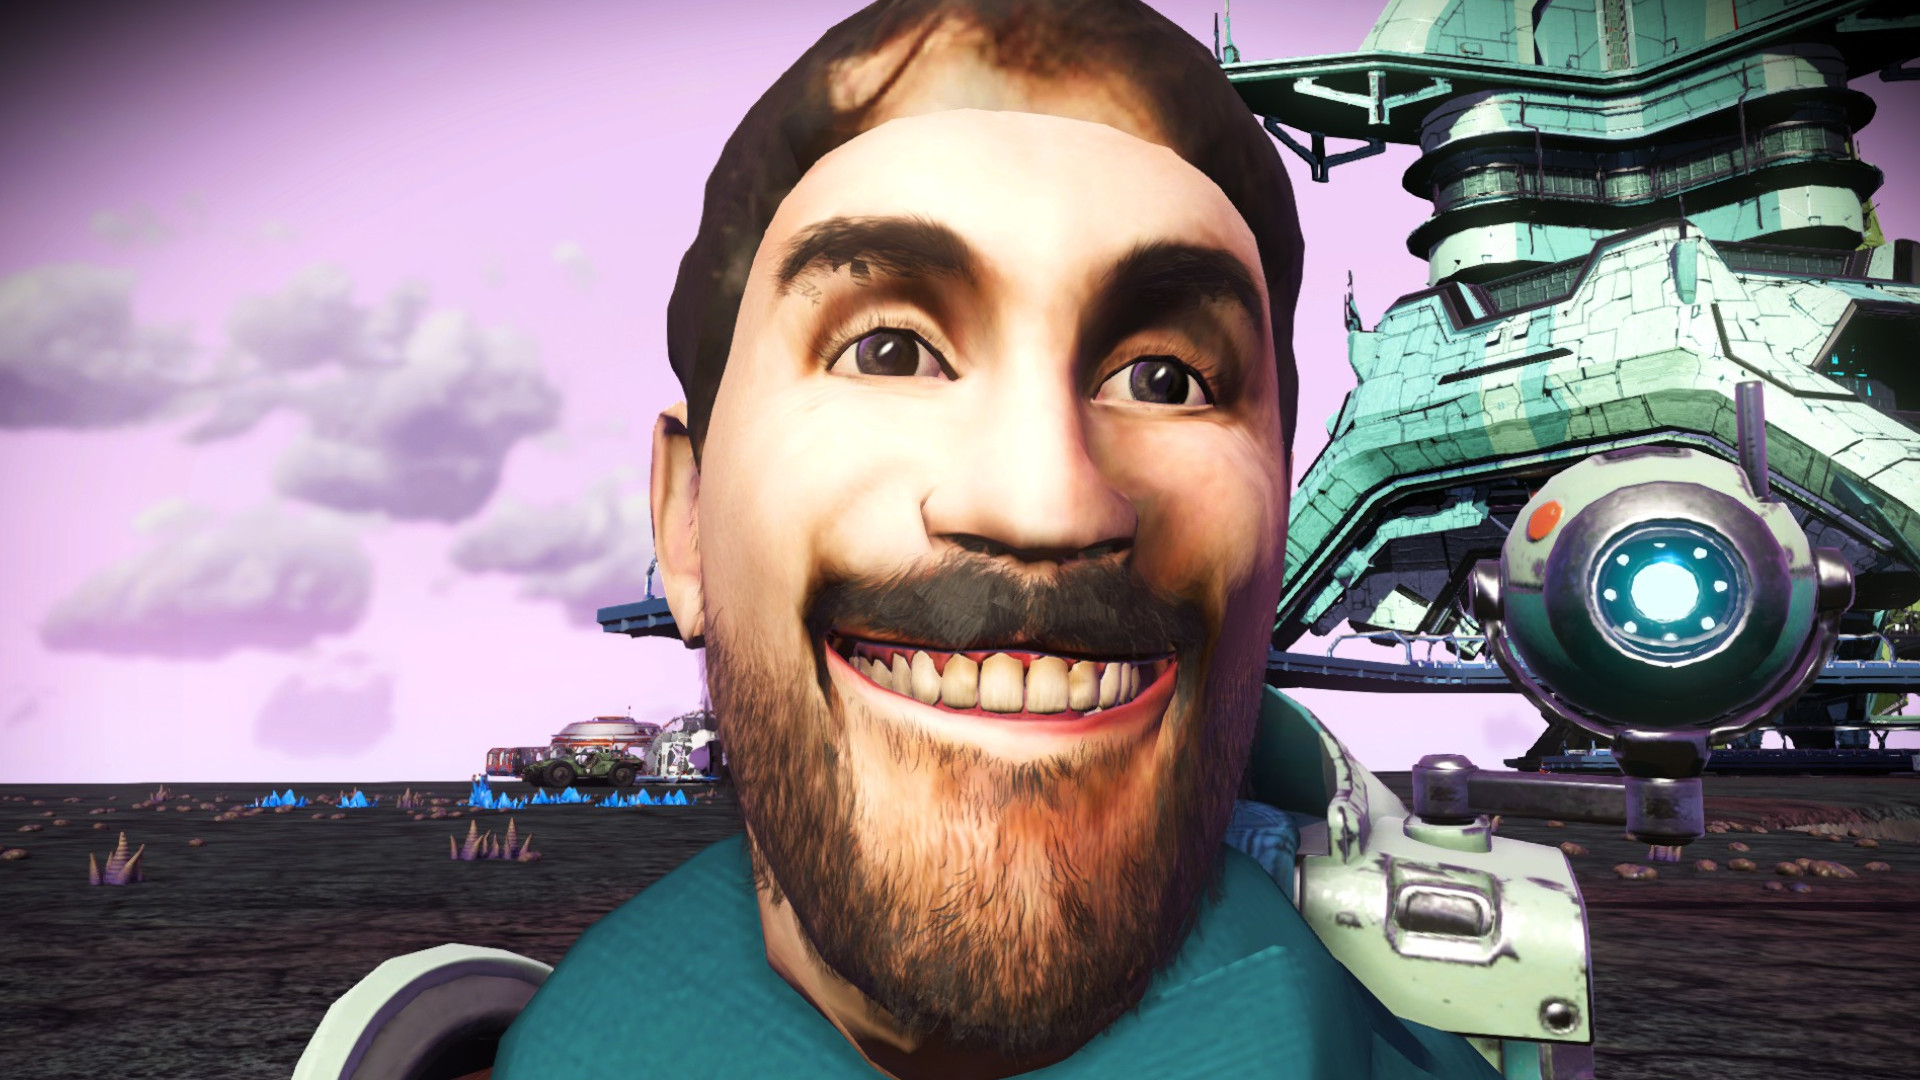 No Man's Sky creator says please don't use this mod that puts his face in the game